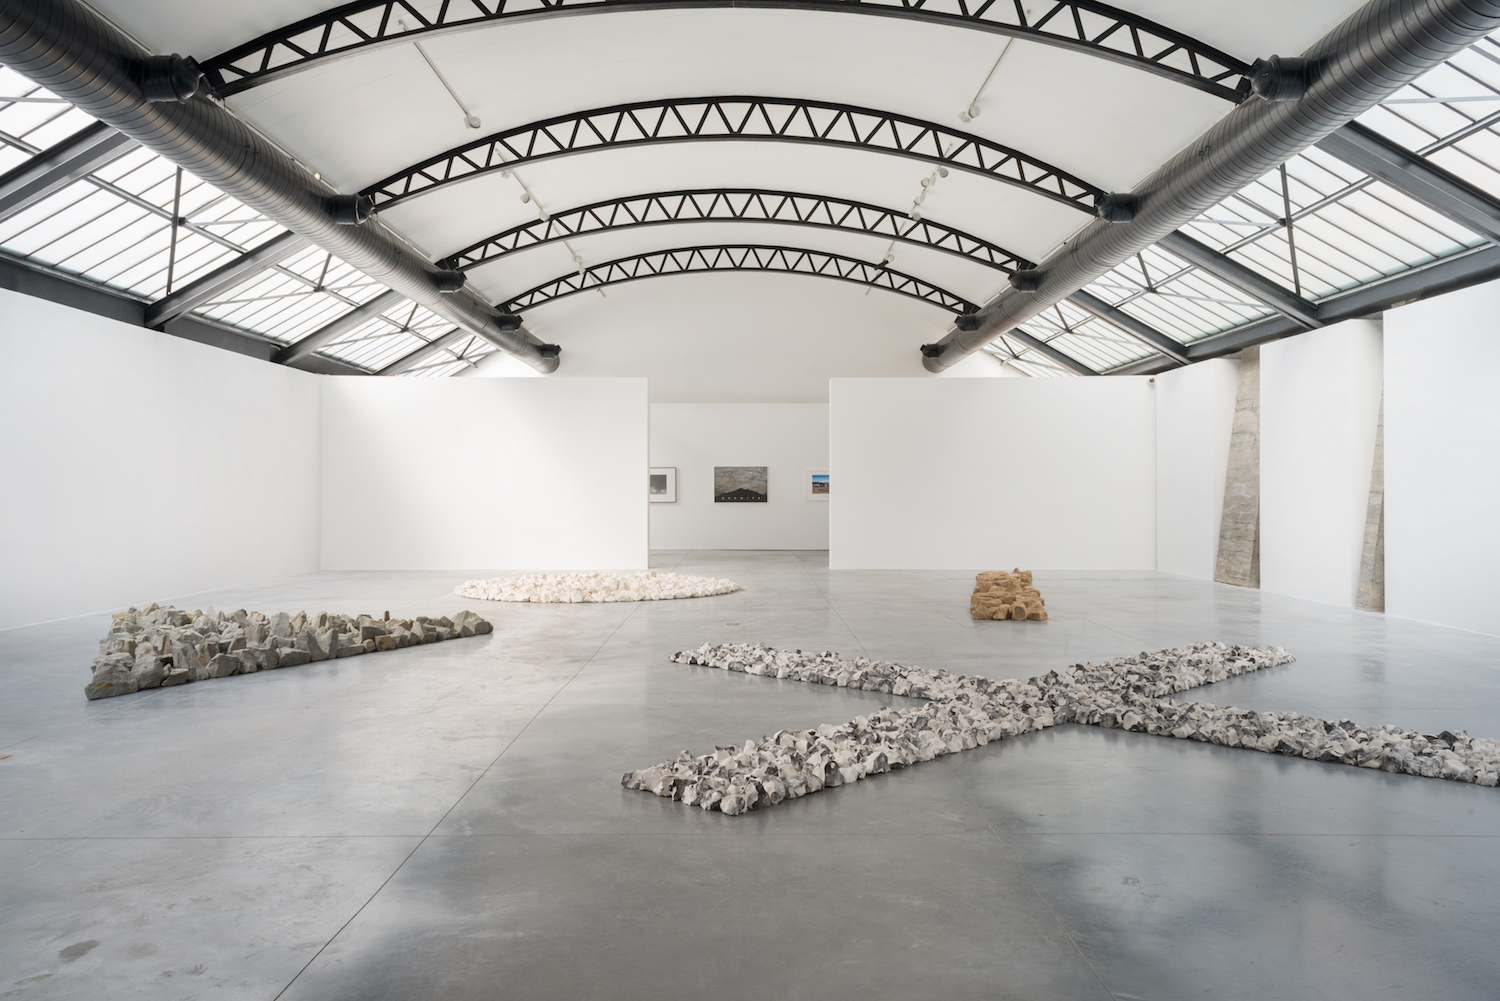 Exhibition view, 'Along the Way' Richard Long, at Fondation CAB. Courtesy of Fondation CAB.